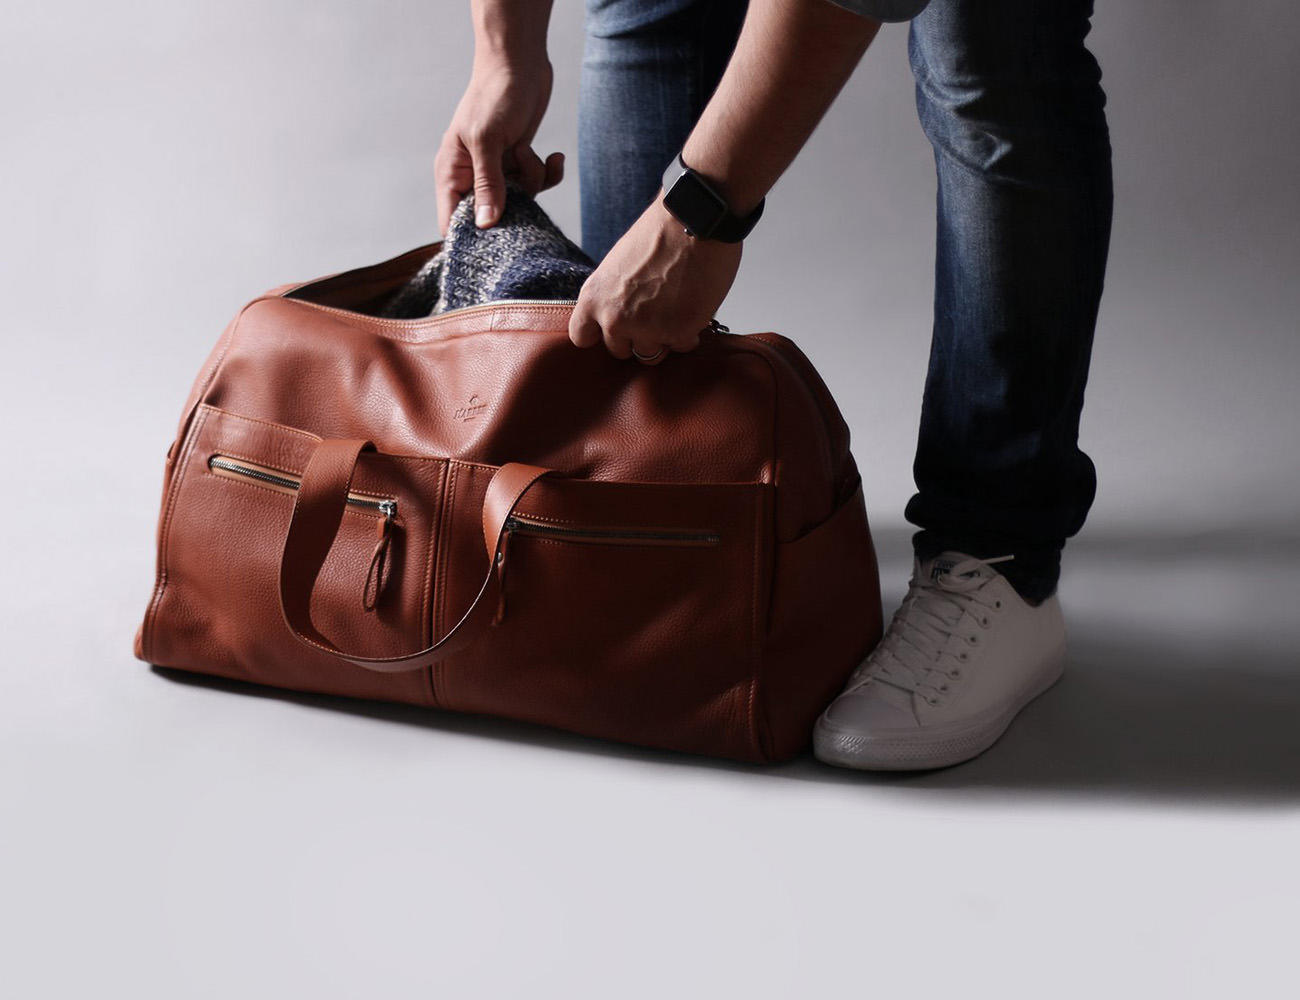 abeba15ac Harber London Spacious Leather Weekender Bag » Gadget Flow